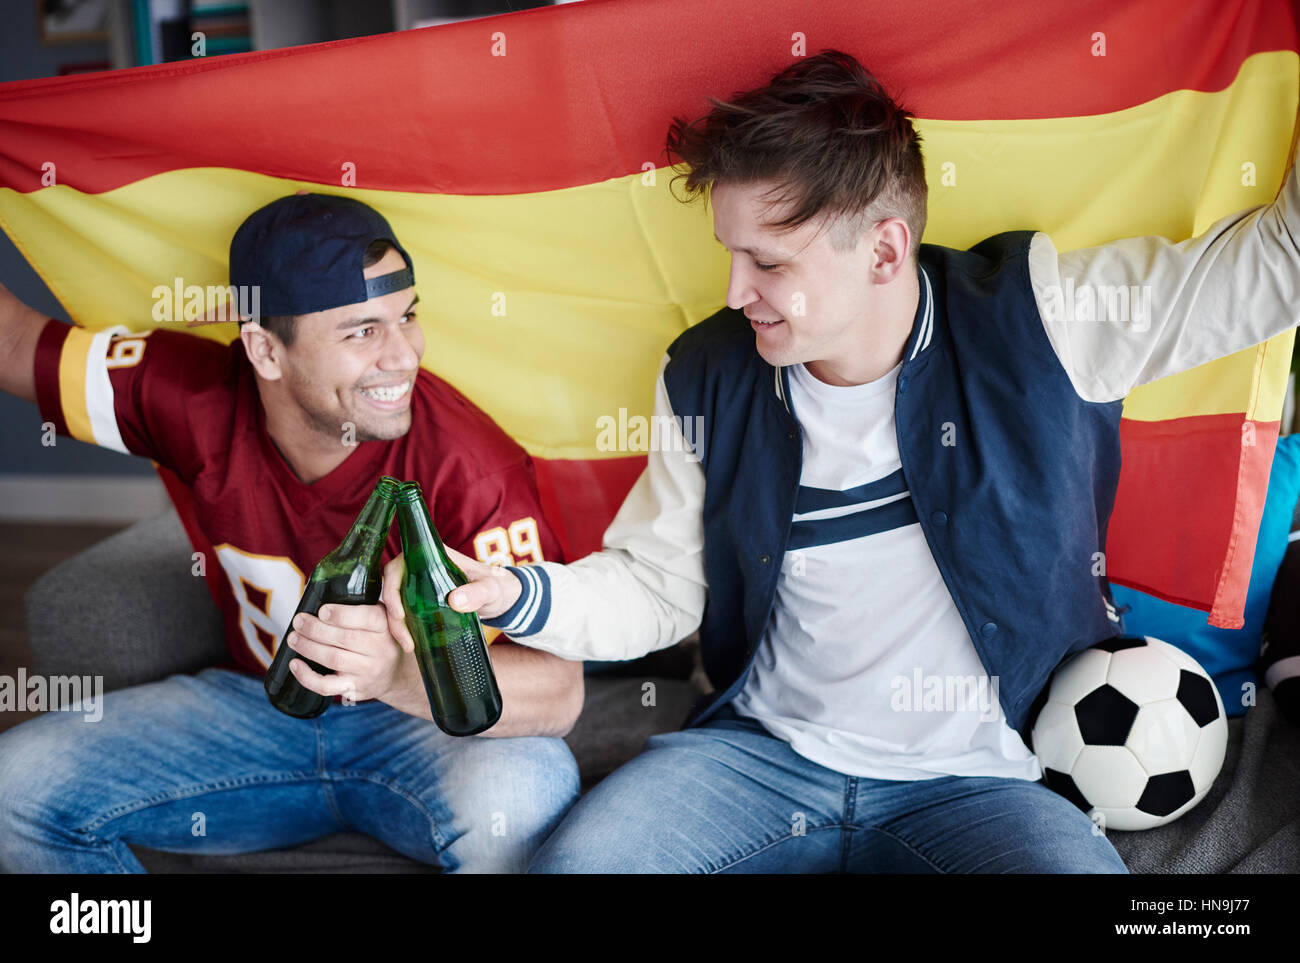 Two friends enjoying soccer on television - Stock Image